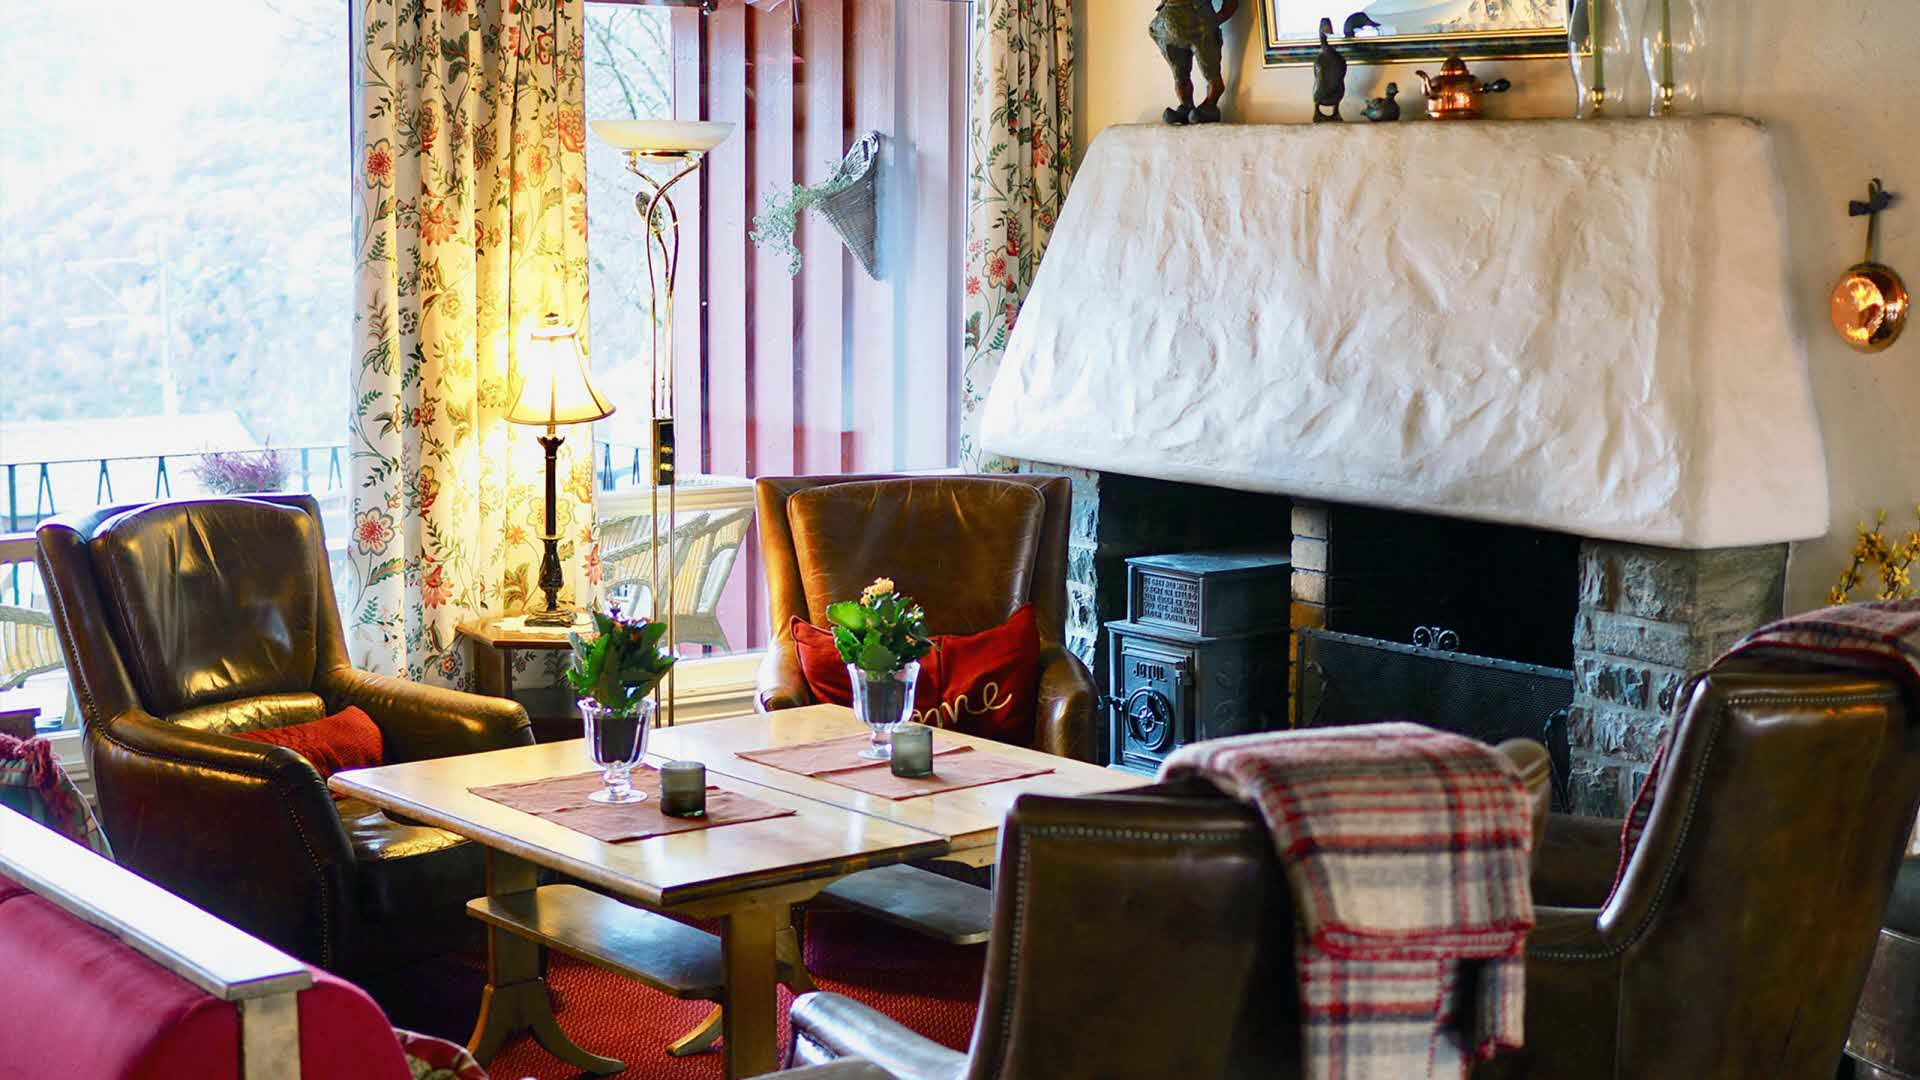 Inside Vatnahalsen Hotel in front of lit fireplace with classic leather chairs, flower curtains and old lamps